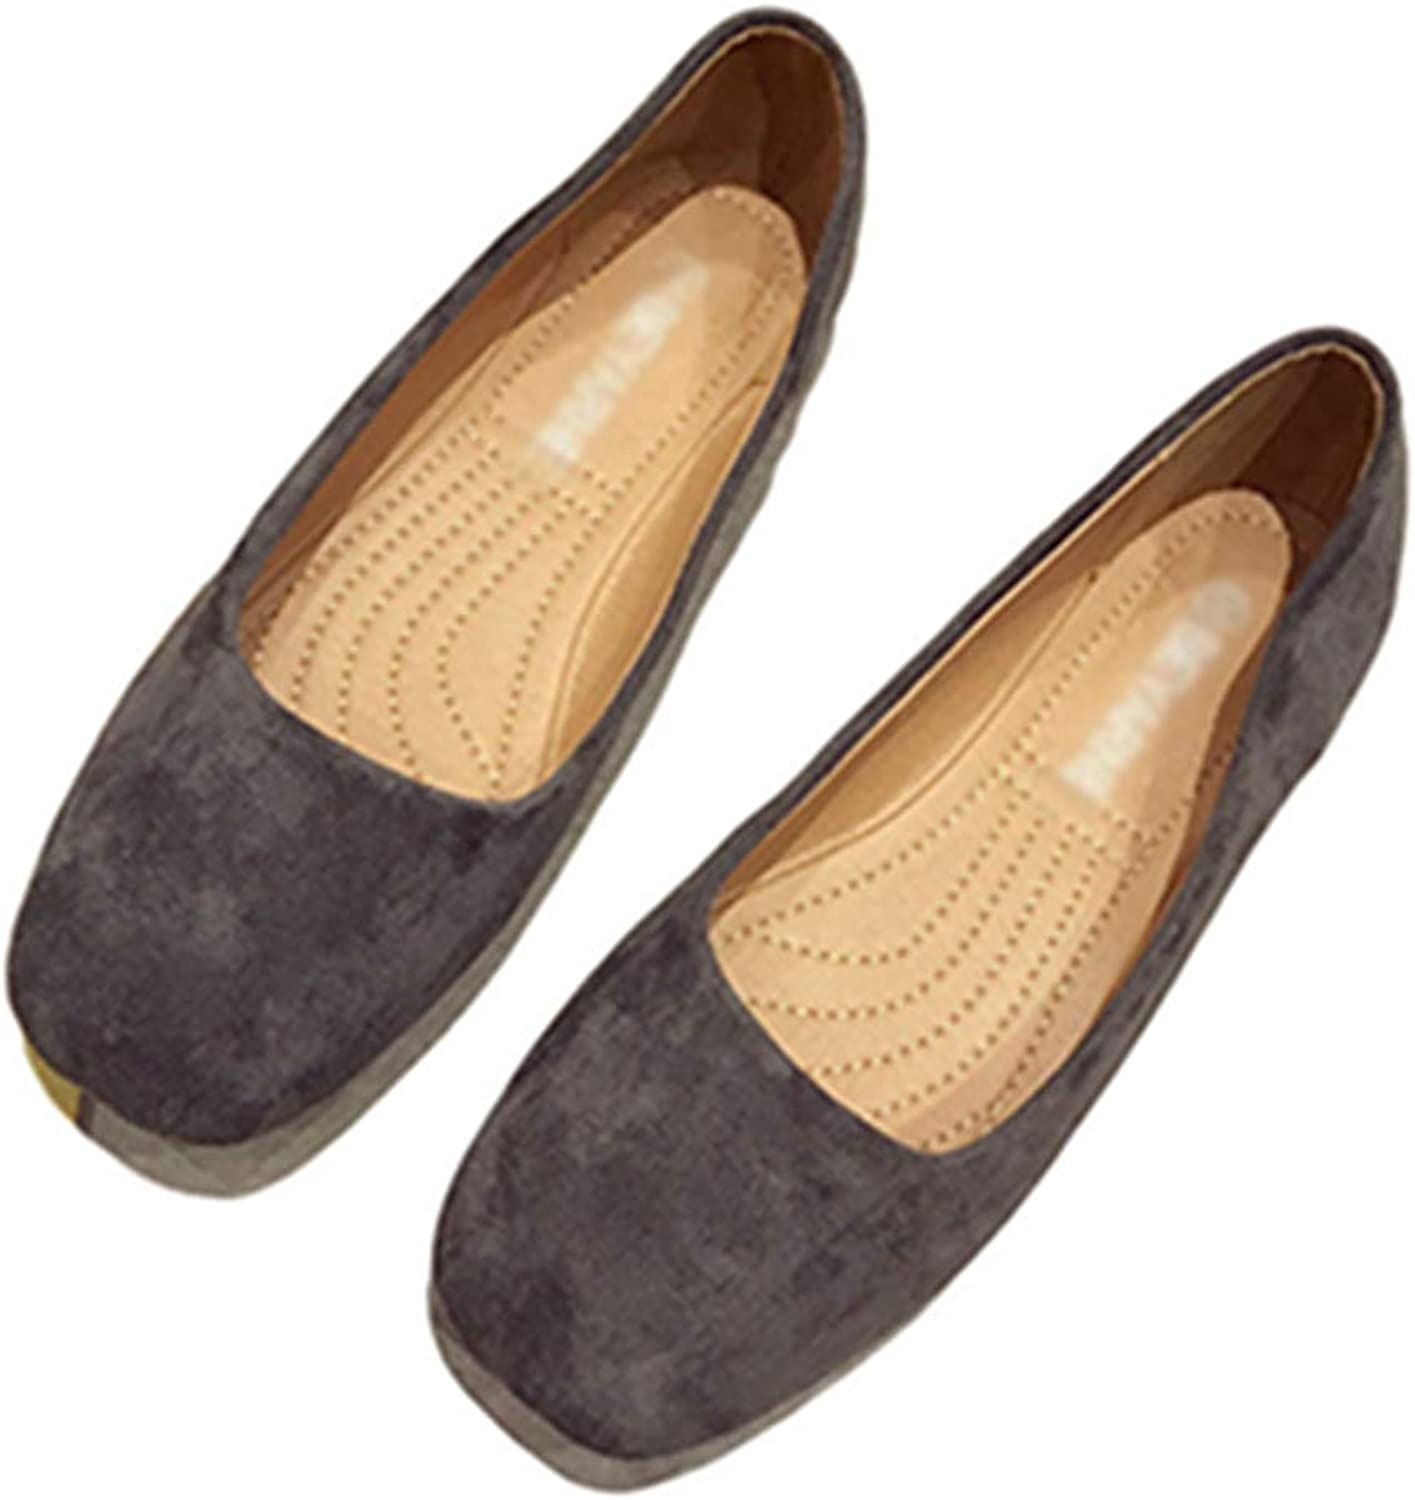 Kyle Walsh Pa Women Casual Flats shoes Suede Slip-on Soft Comfortable Ladies Working Driving Moccasins